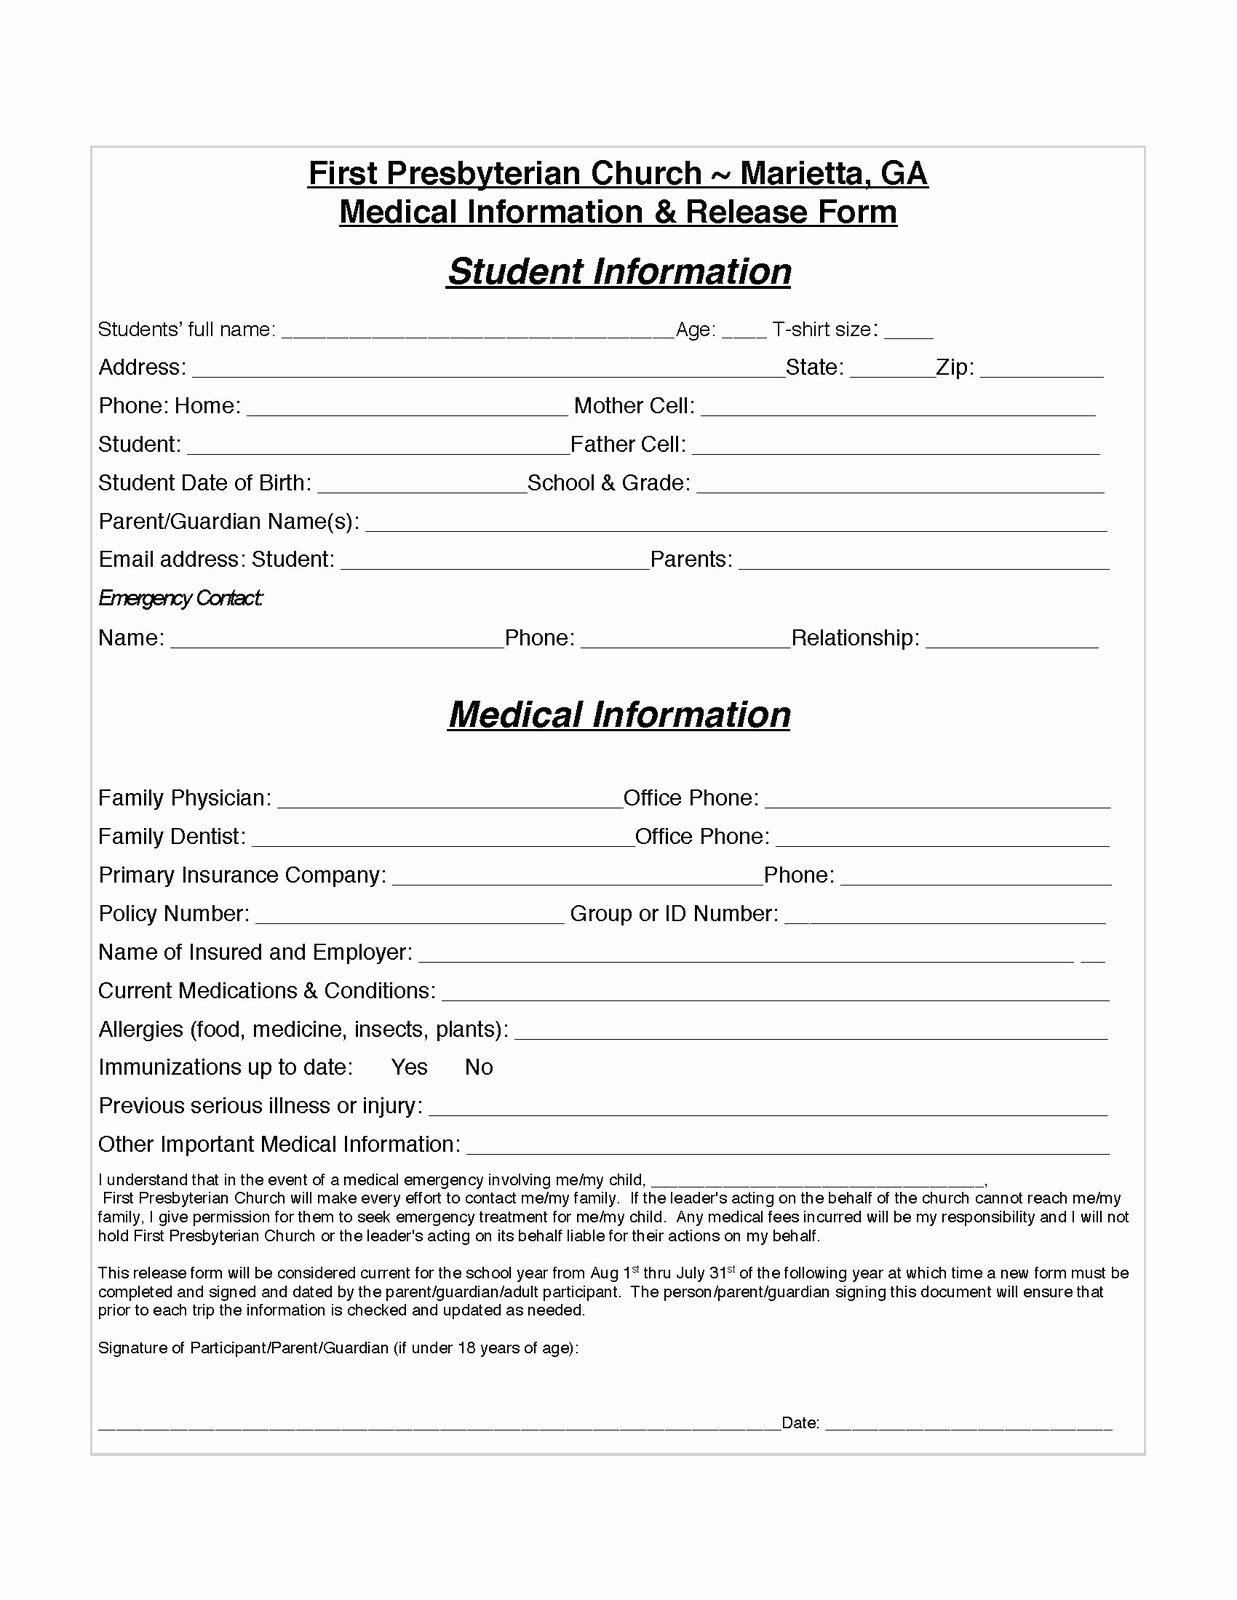 Medical Release form Template Luxury Release Information form Template Beepmunk